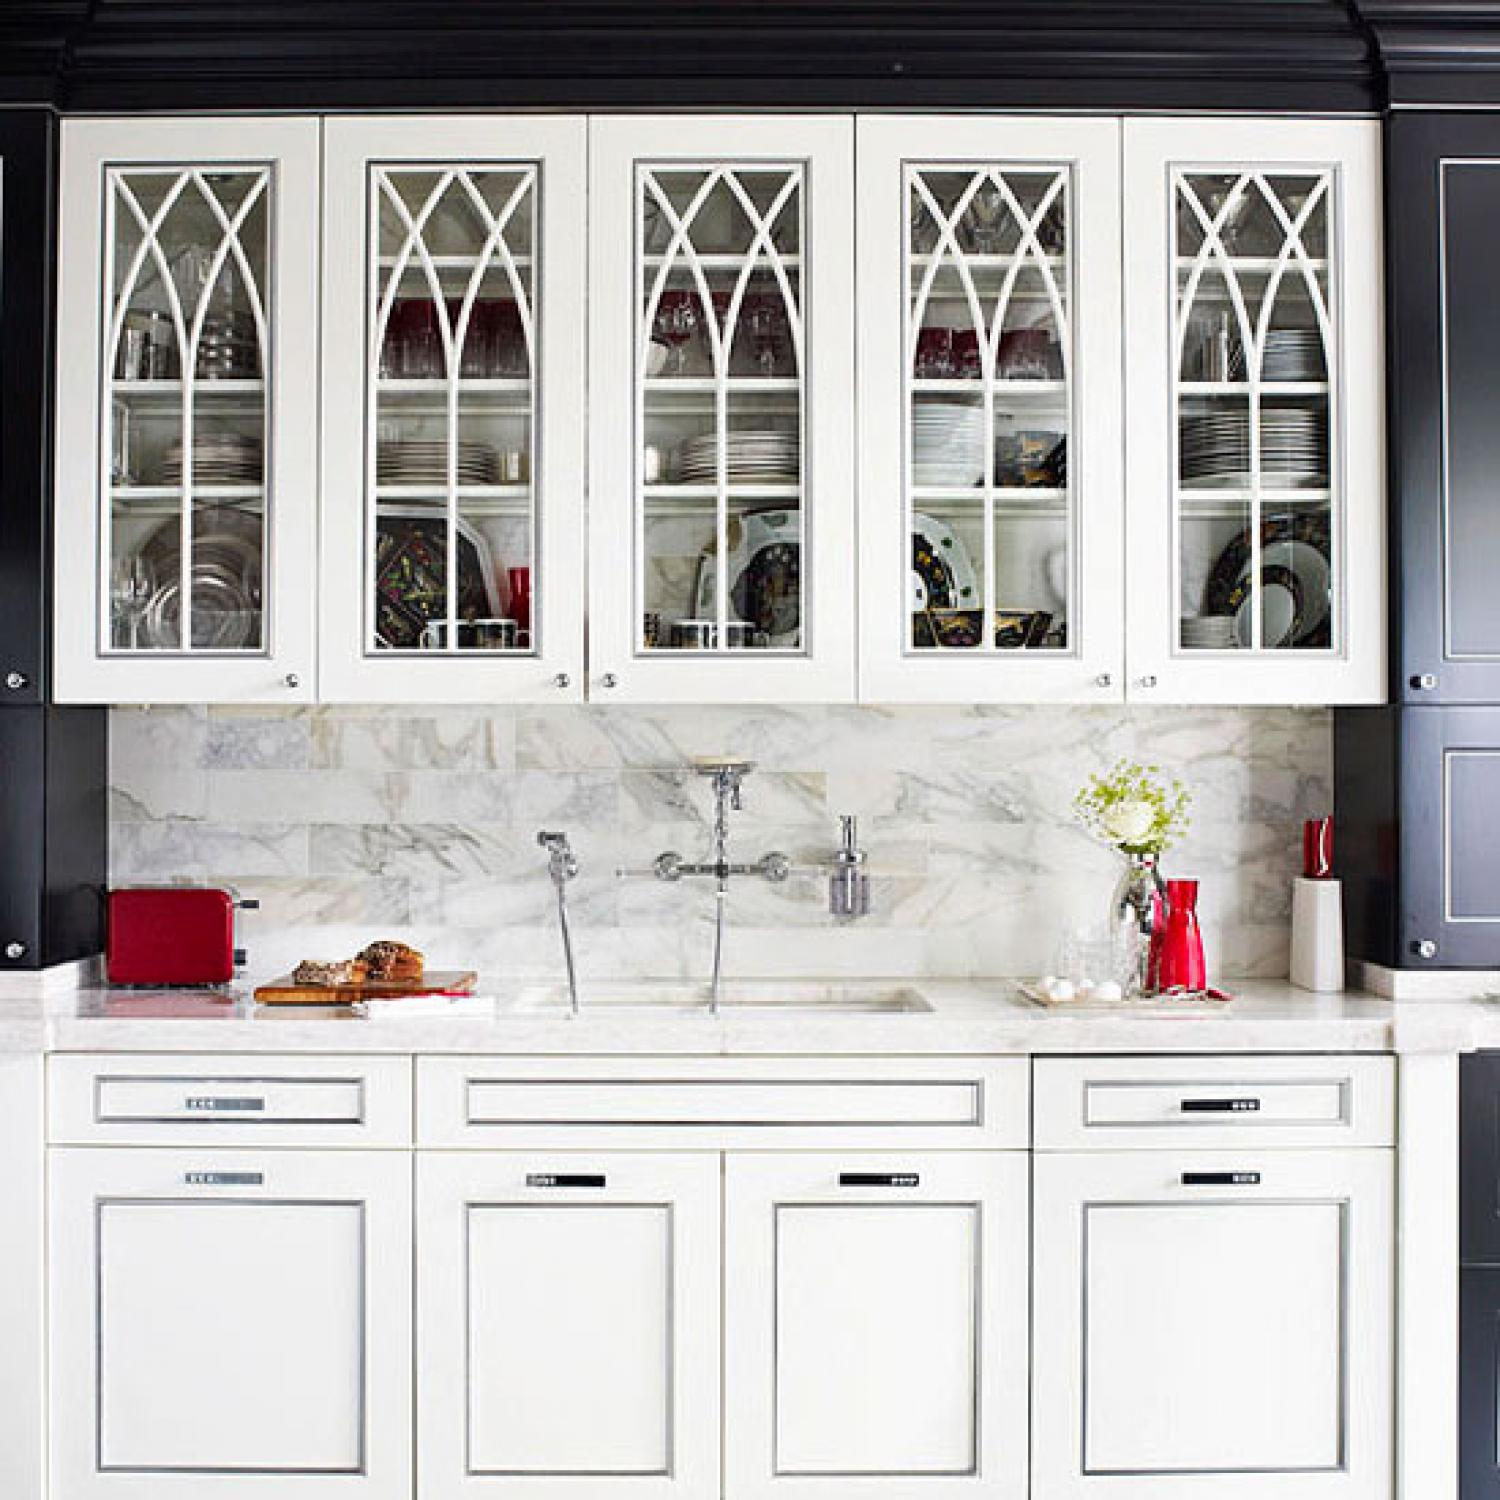 Kitchen Cabinet Door Styles Options: Distinctive Kitchen Cabinets With Glass-Front Doors